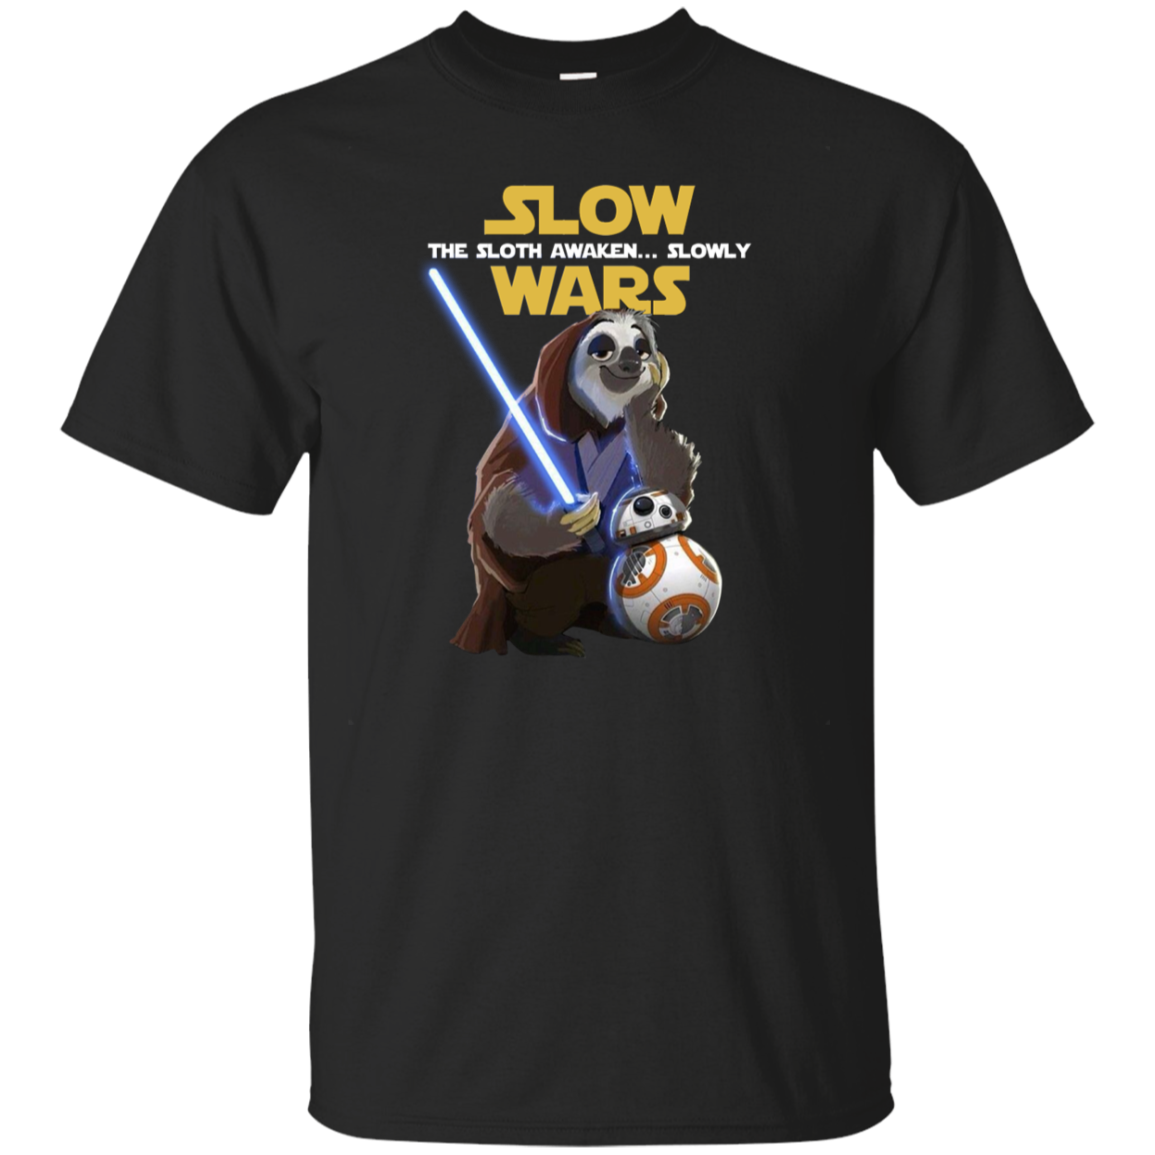 Funny Star war fan gift Slow Wars The Sloth Awaken Slowly T-Shirt